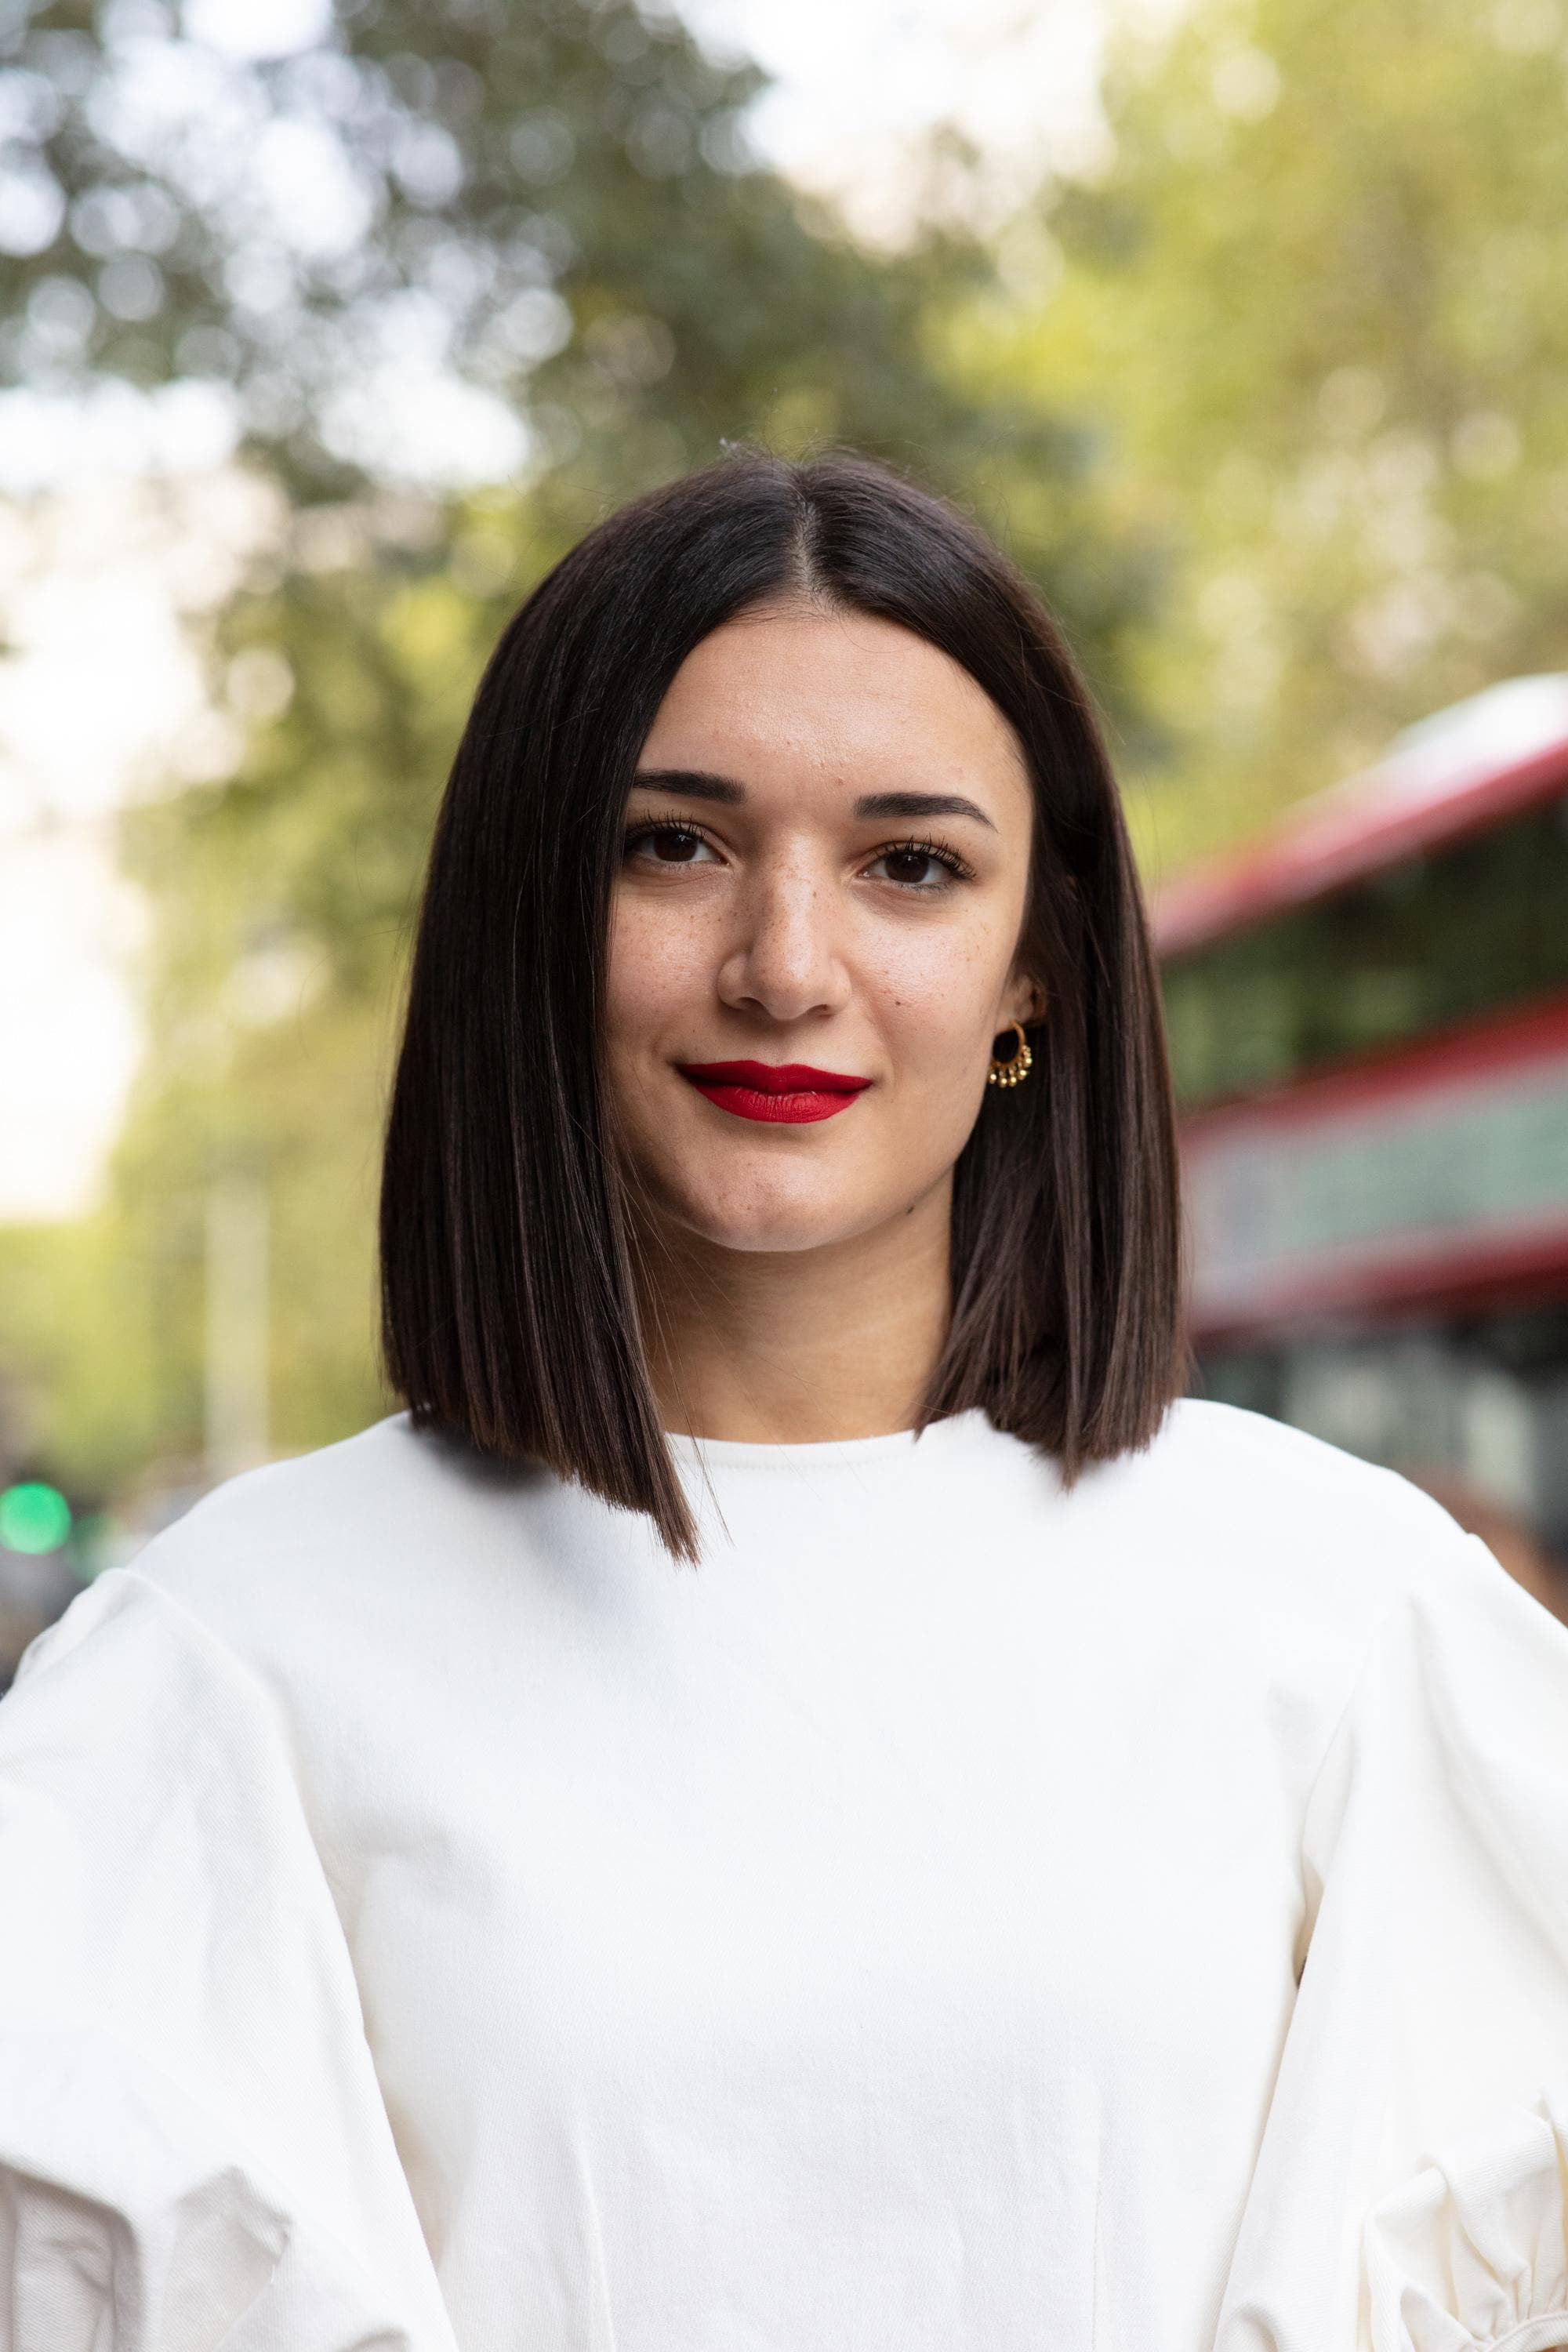 London Fashion Week street style hair: Close up shot of a woman with a sleek, dark chocolate blunt cut long bob wearing a white jumper and posing on the street